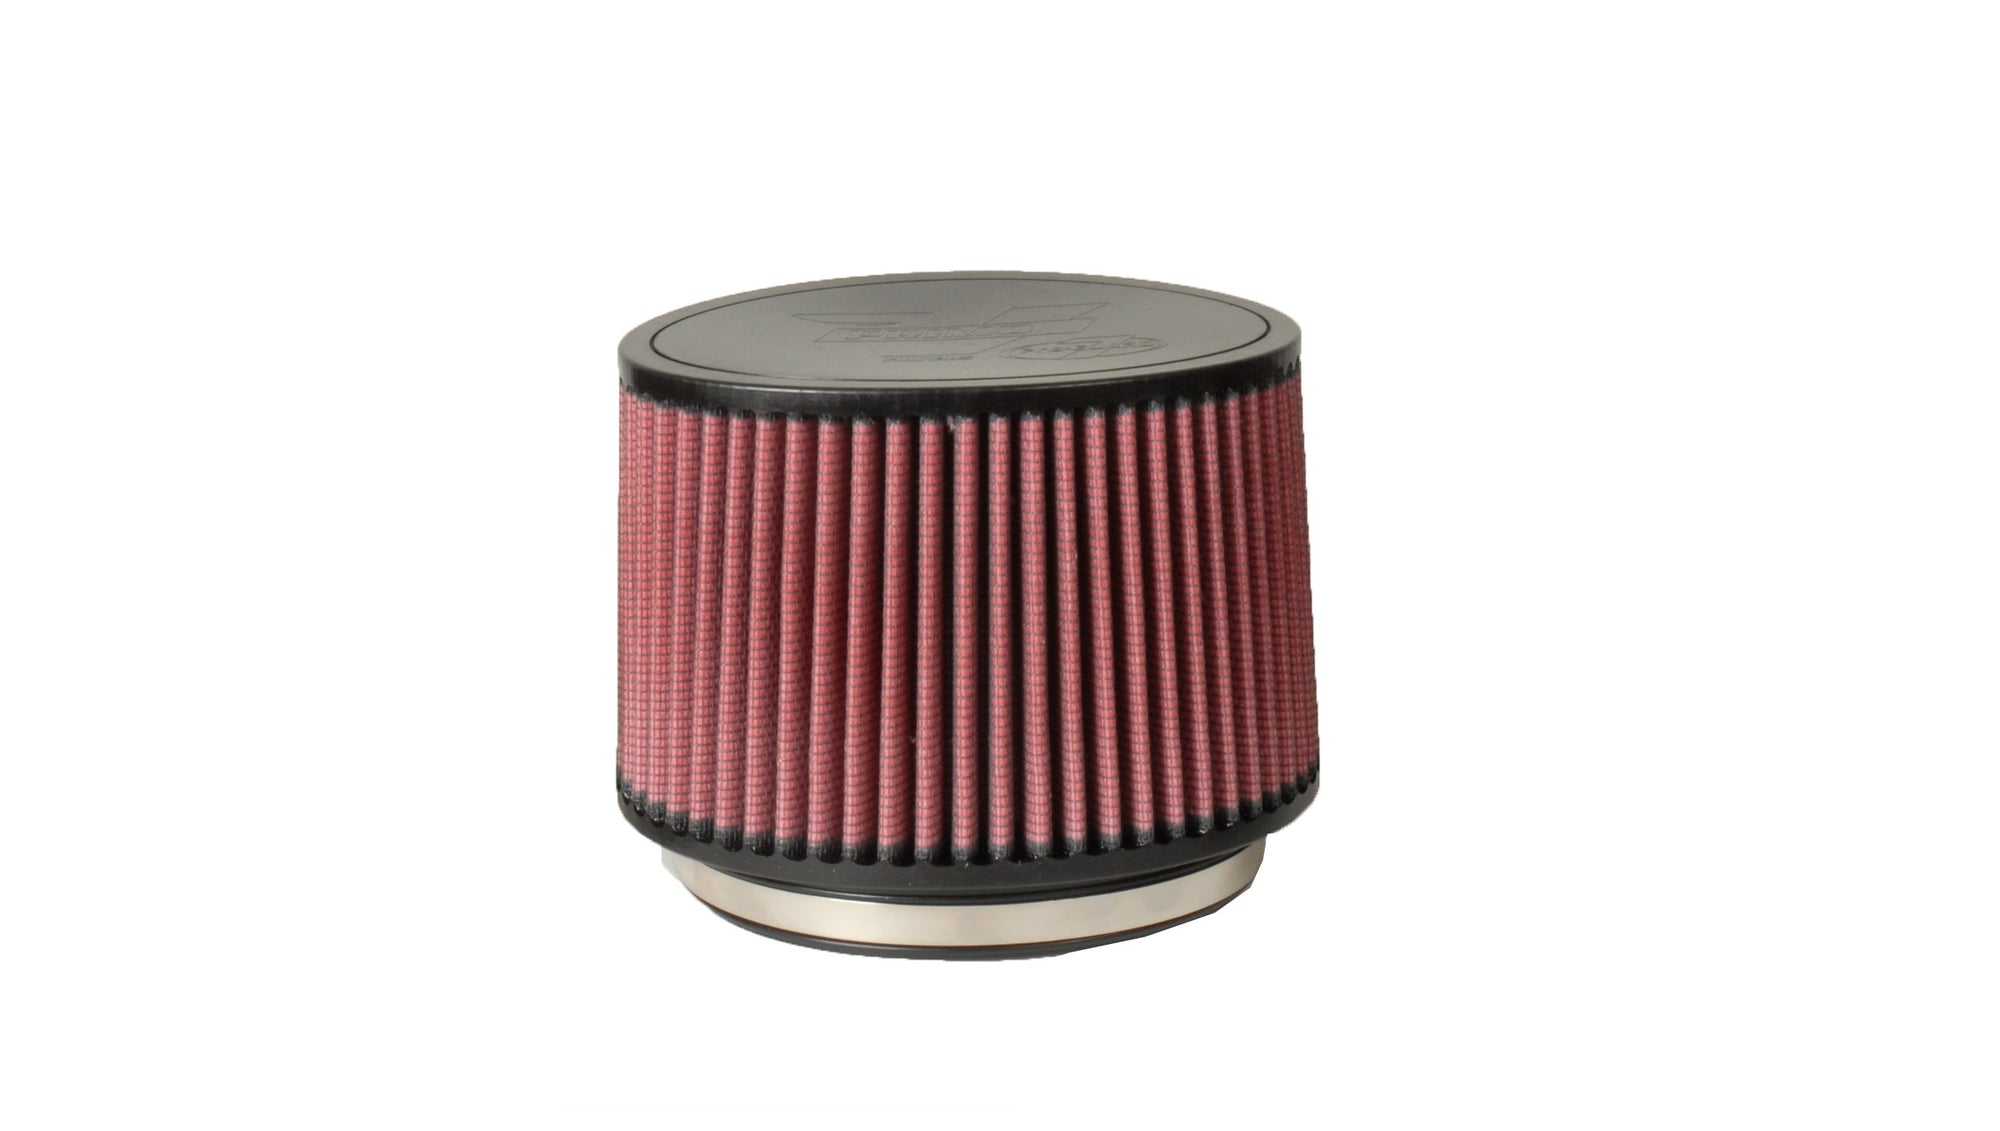 2003-2007 Dodge Ram 2500 and 3500 Oiled Air Intake Air Filter - 5152